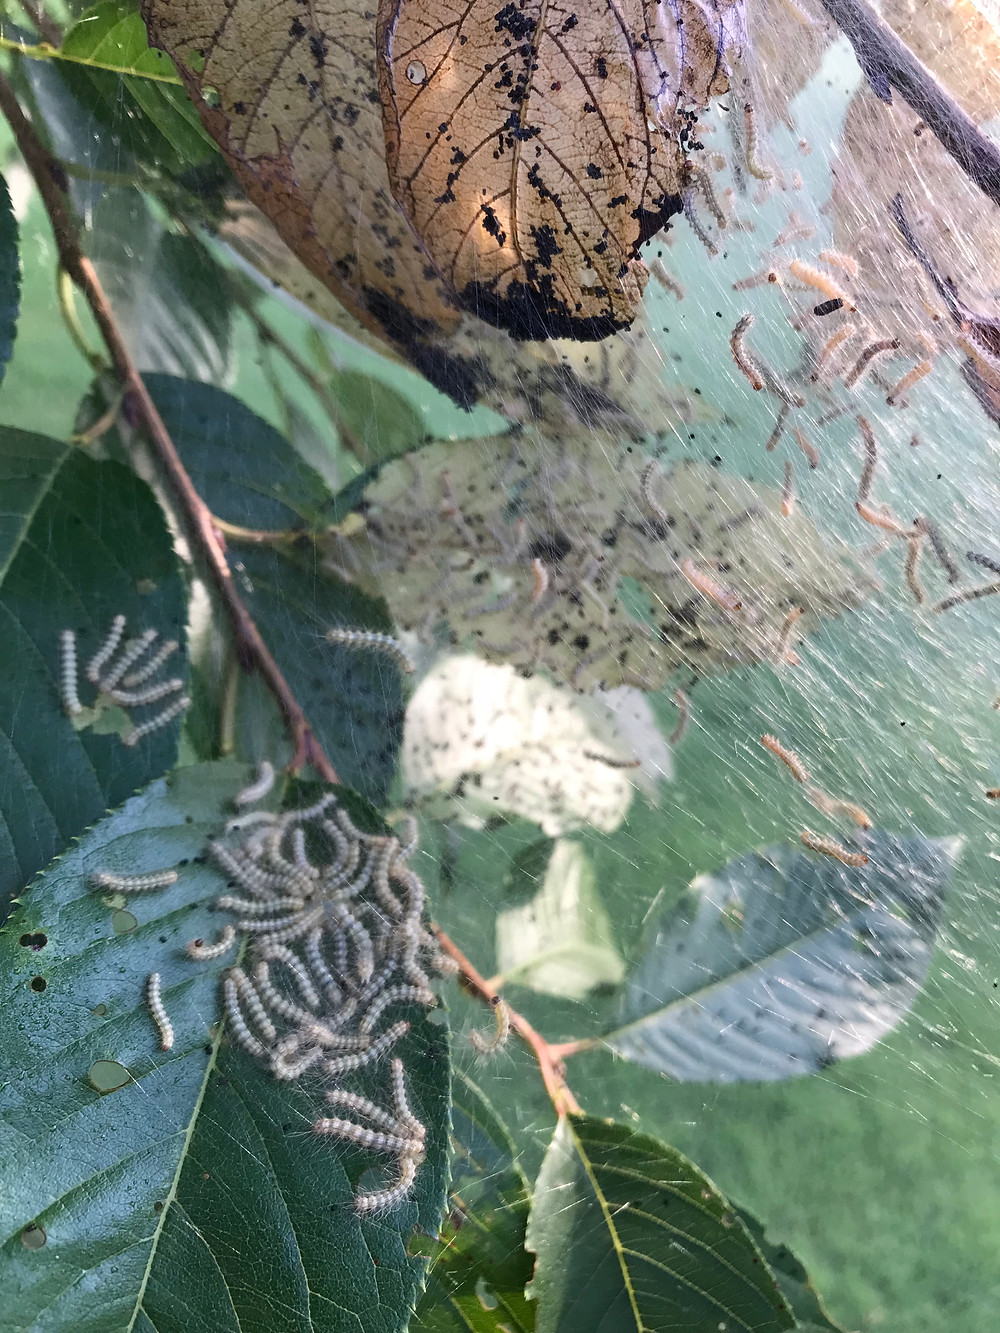 Fall webworms leave behind skeletonized leaves and fecal droppings. Yummy.